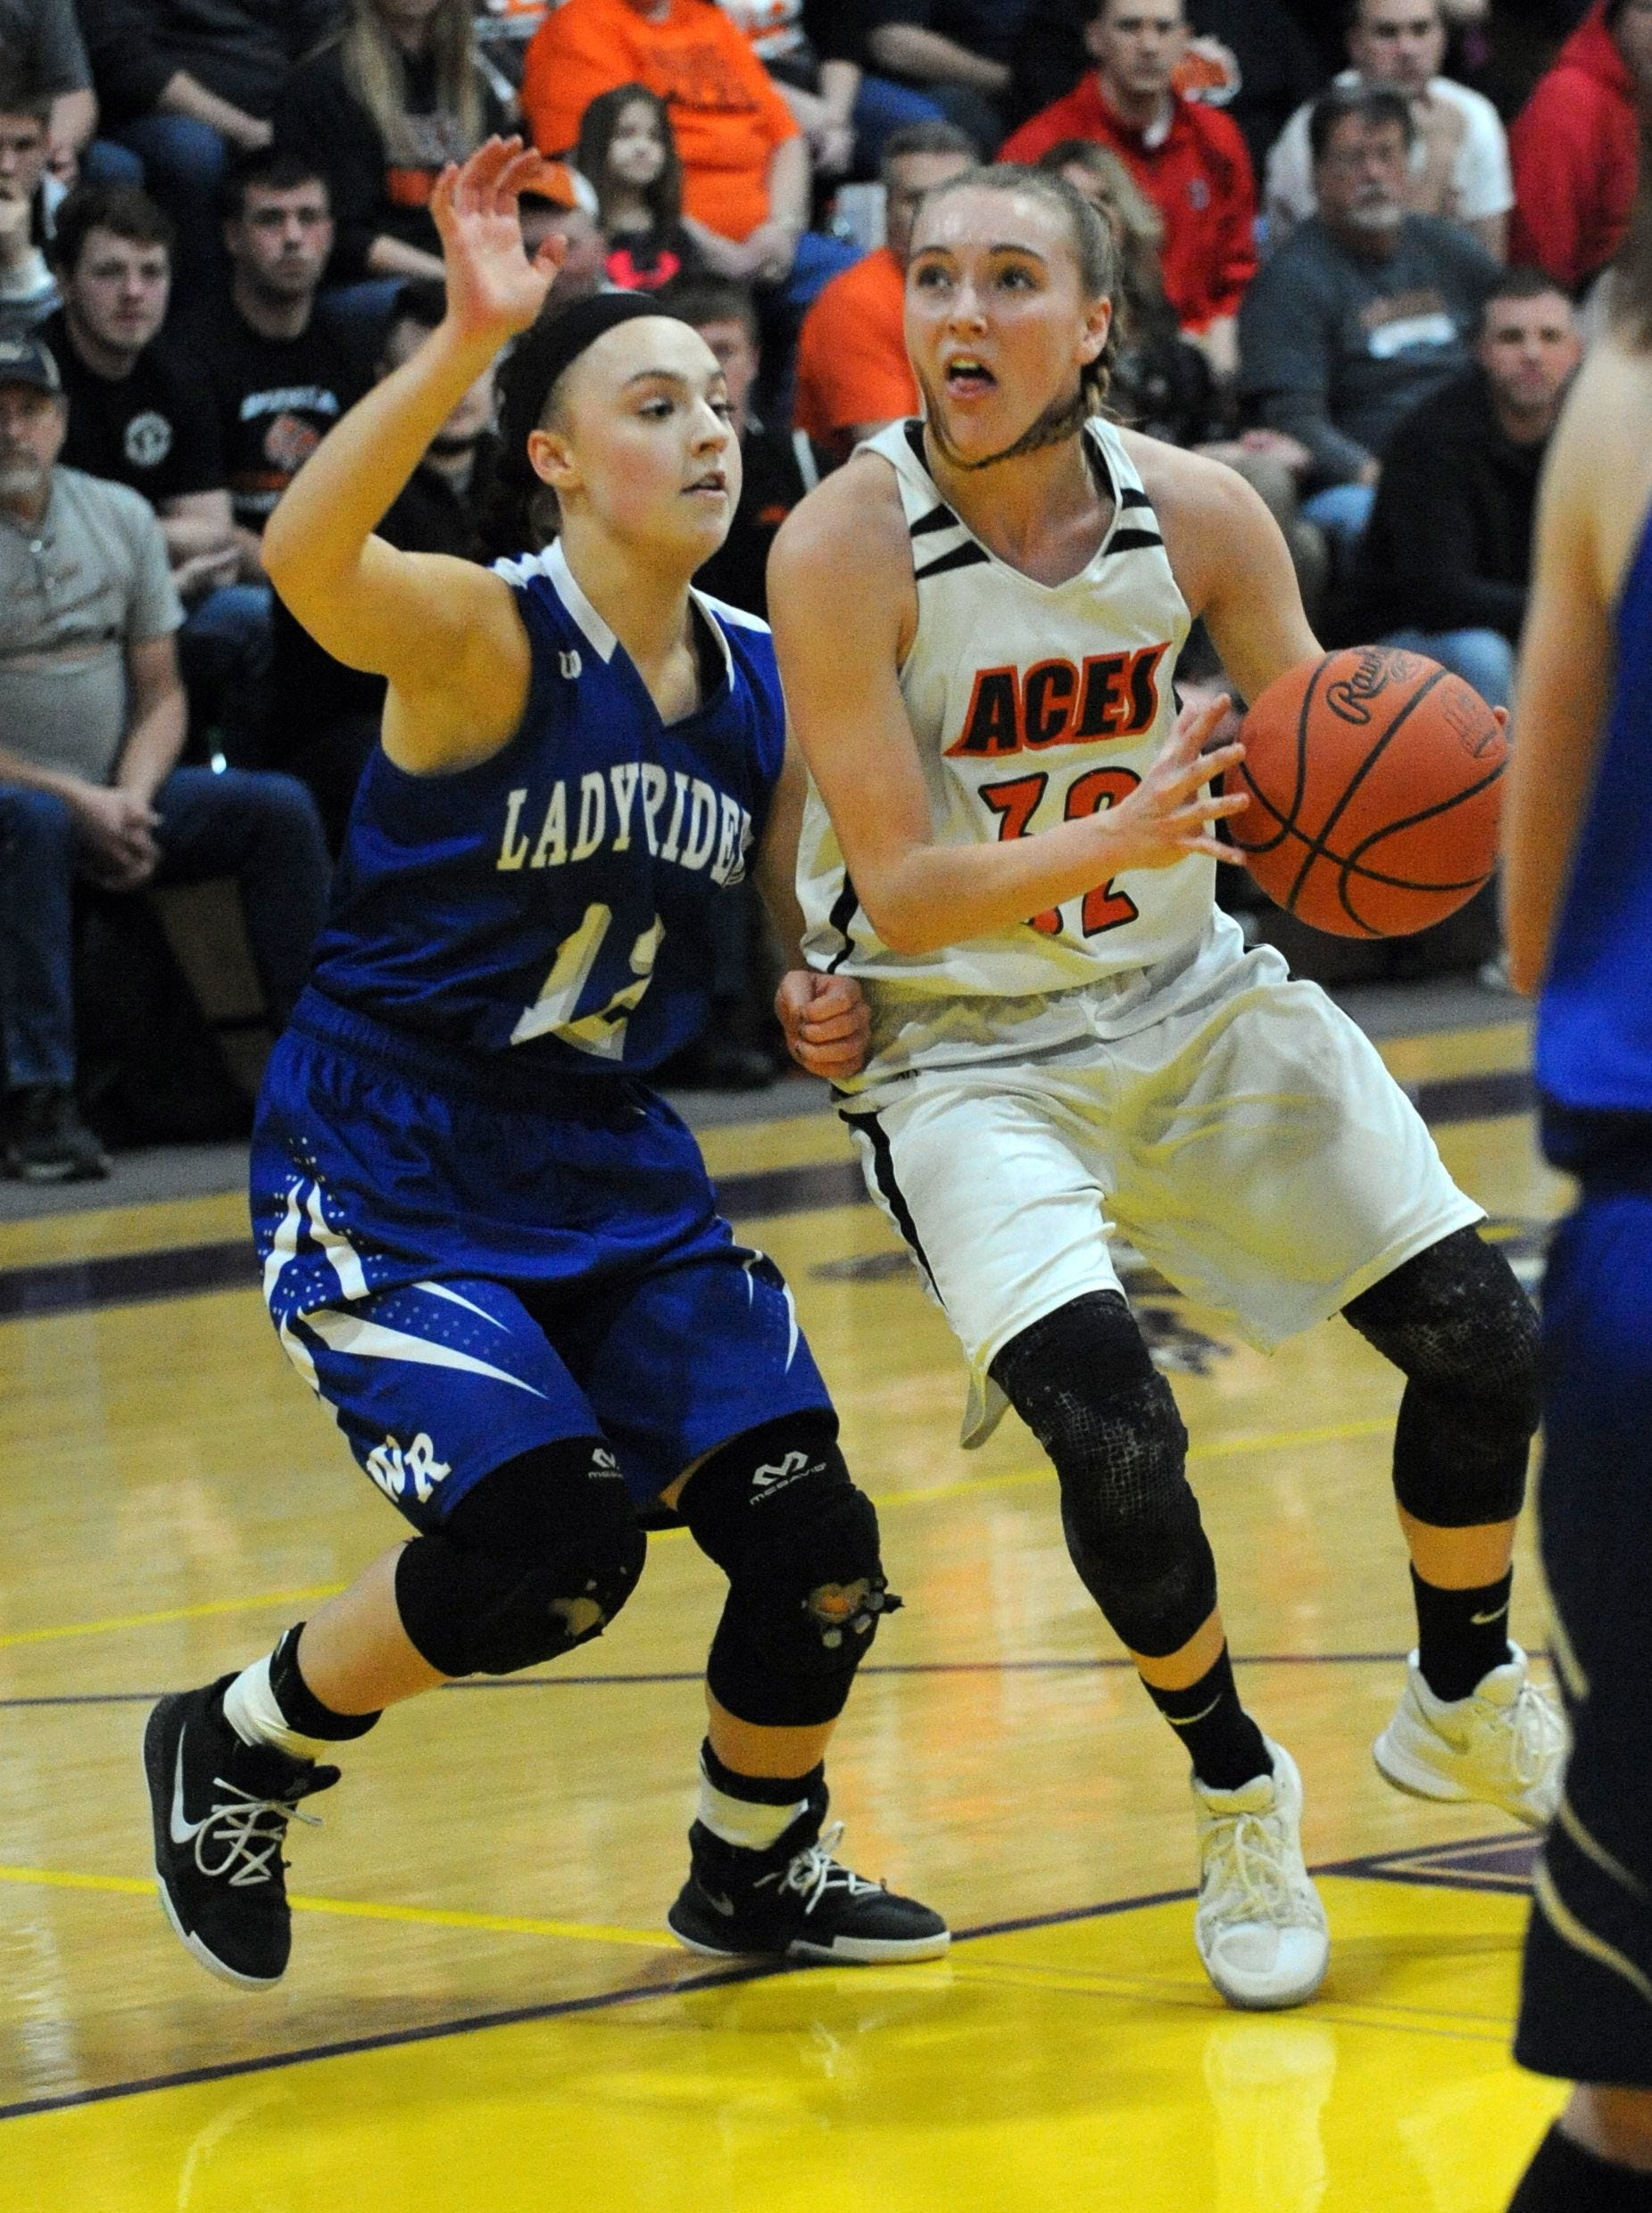 Amanda-Clearcreek senior Alyssa Evans is the 2019 Eagle-Gazette Girls Basketball Player of the Year for the second consecutive season.